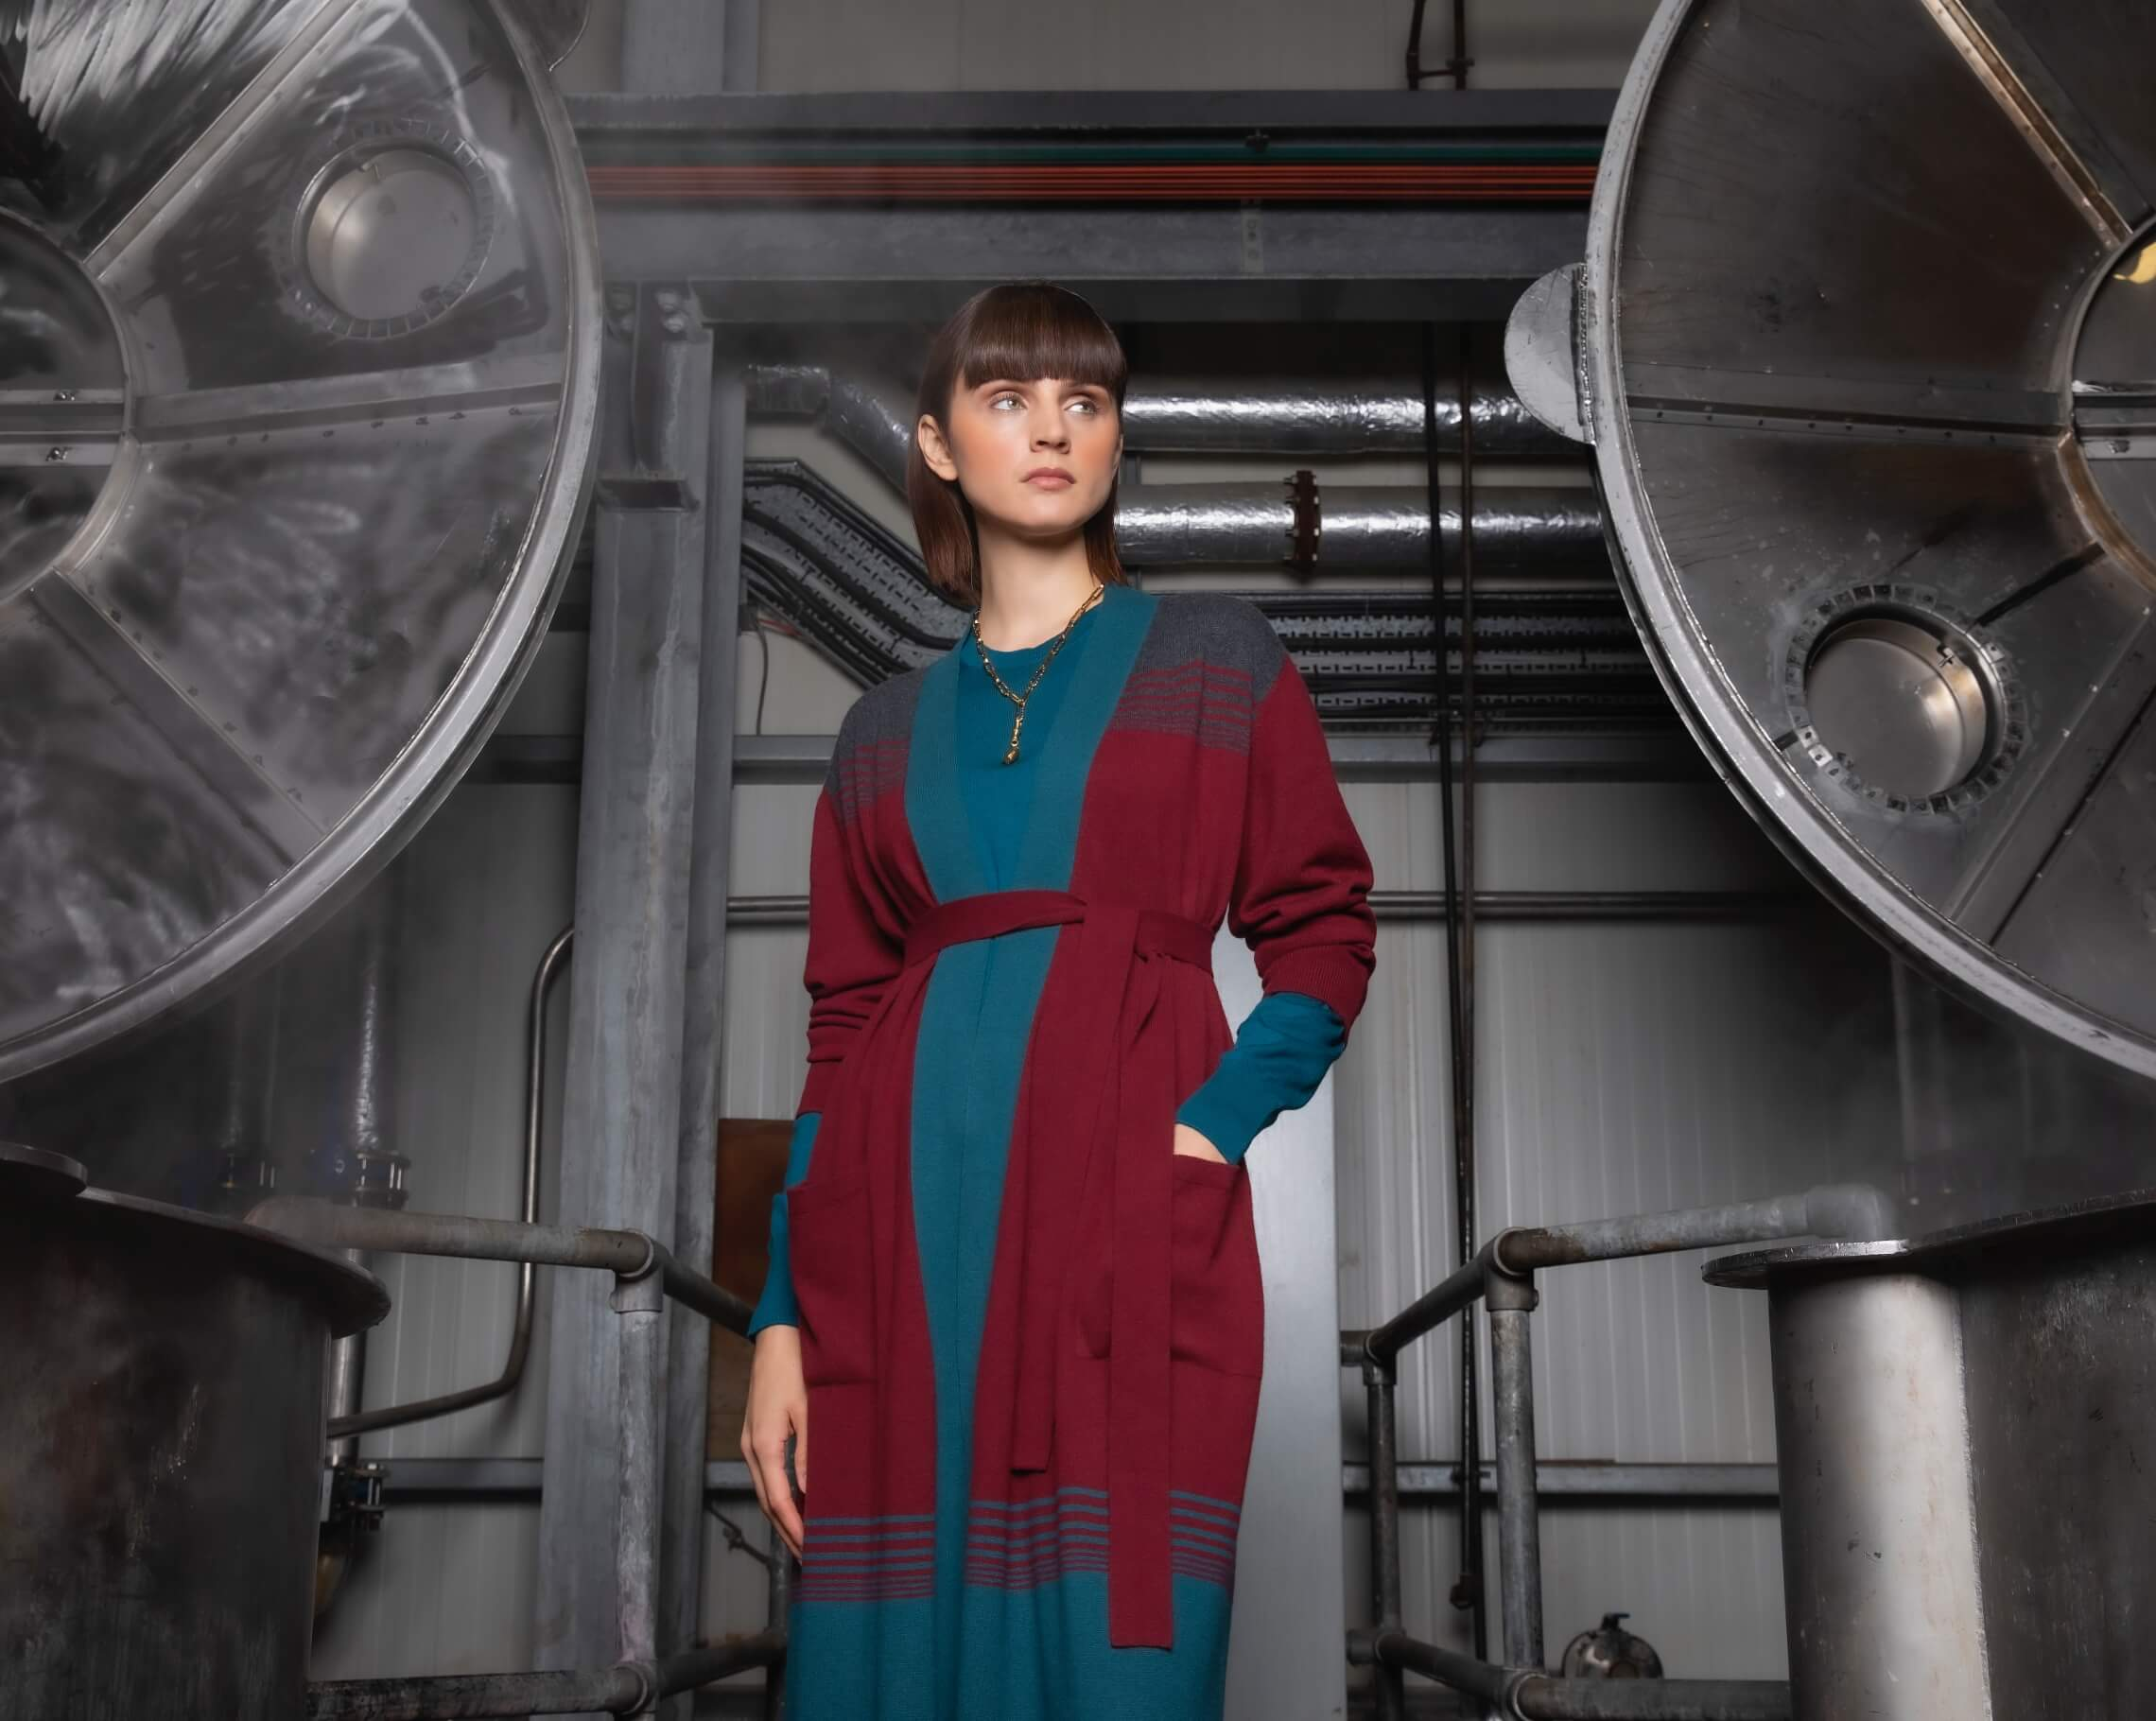 Johnstons of Elgin model wearing ombre clothing in the Johnstons of Elgin dyehouse